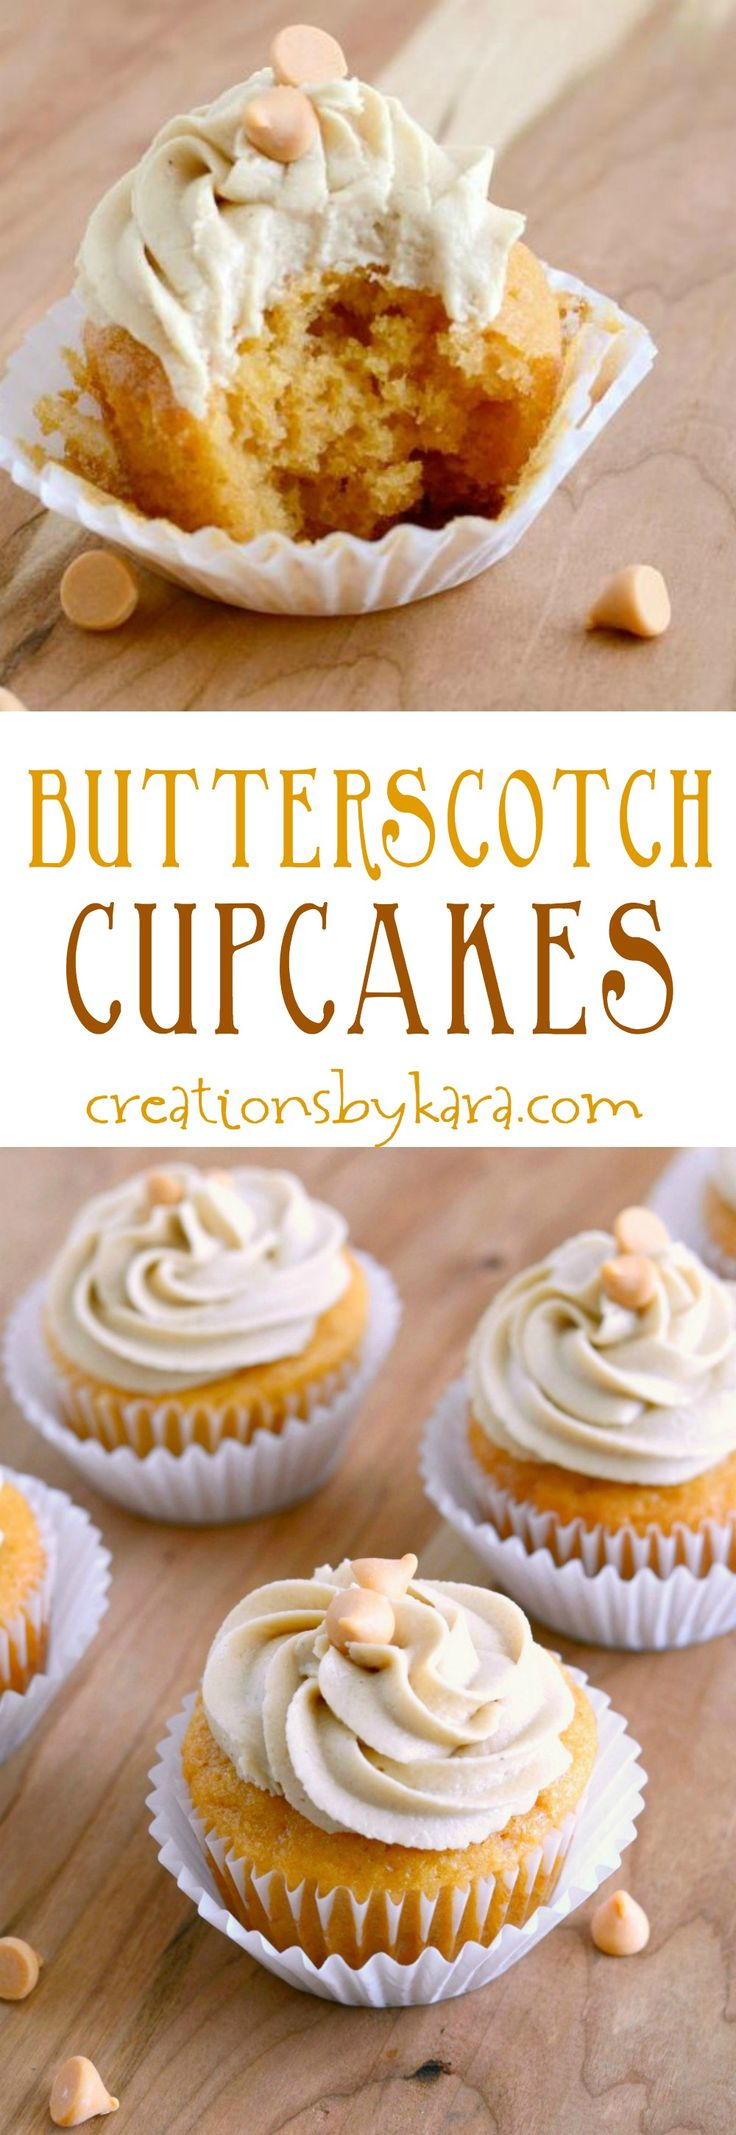 These Butterscotch cupcakes are packed with flavor and so tender! The butterscotch frosting is incredible!